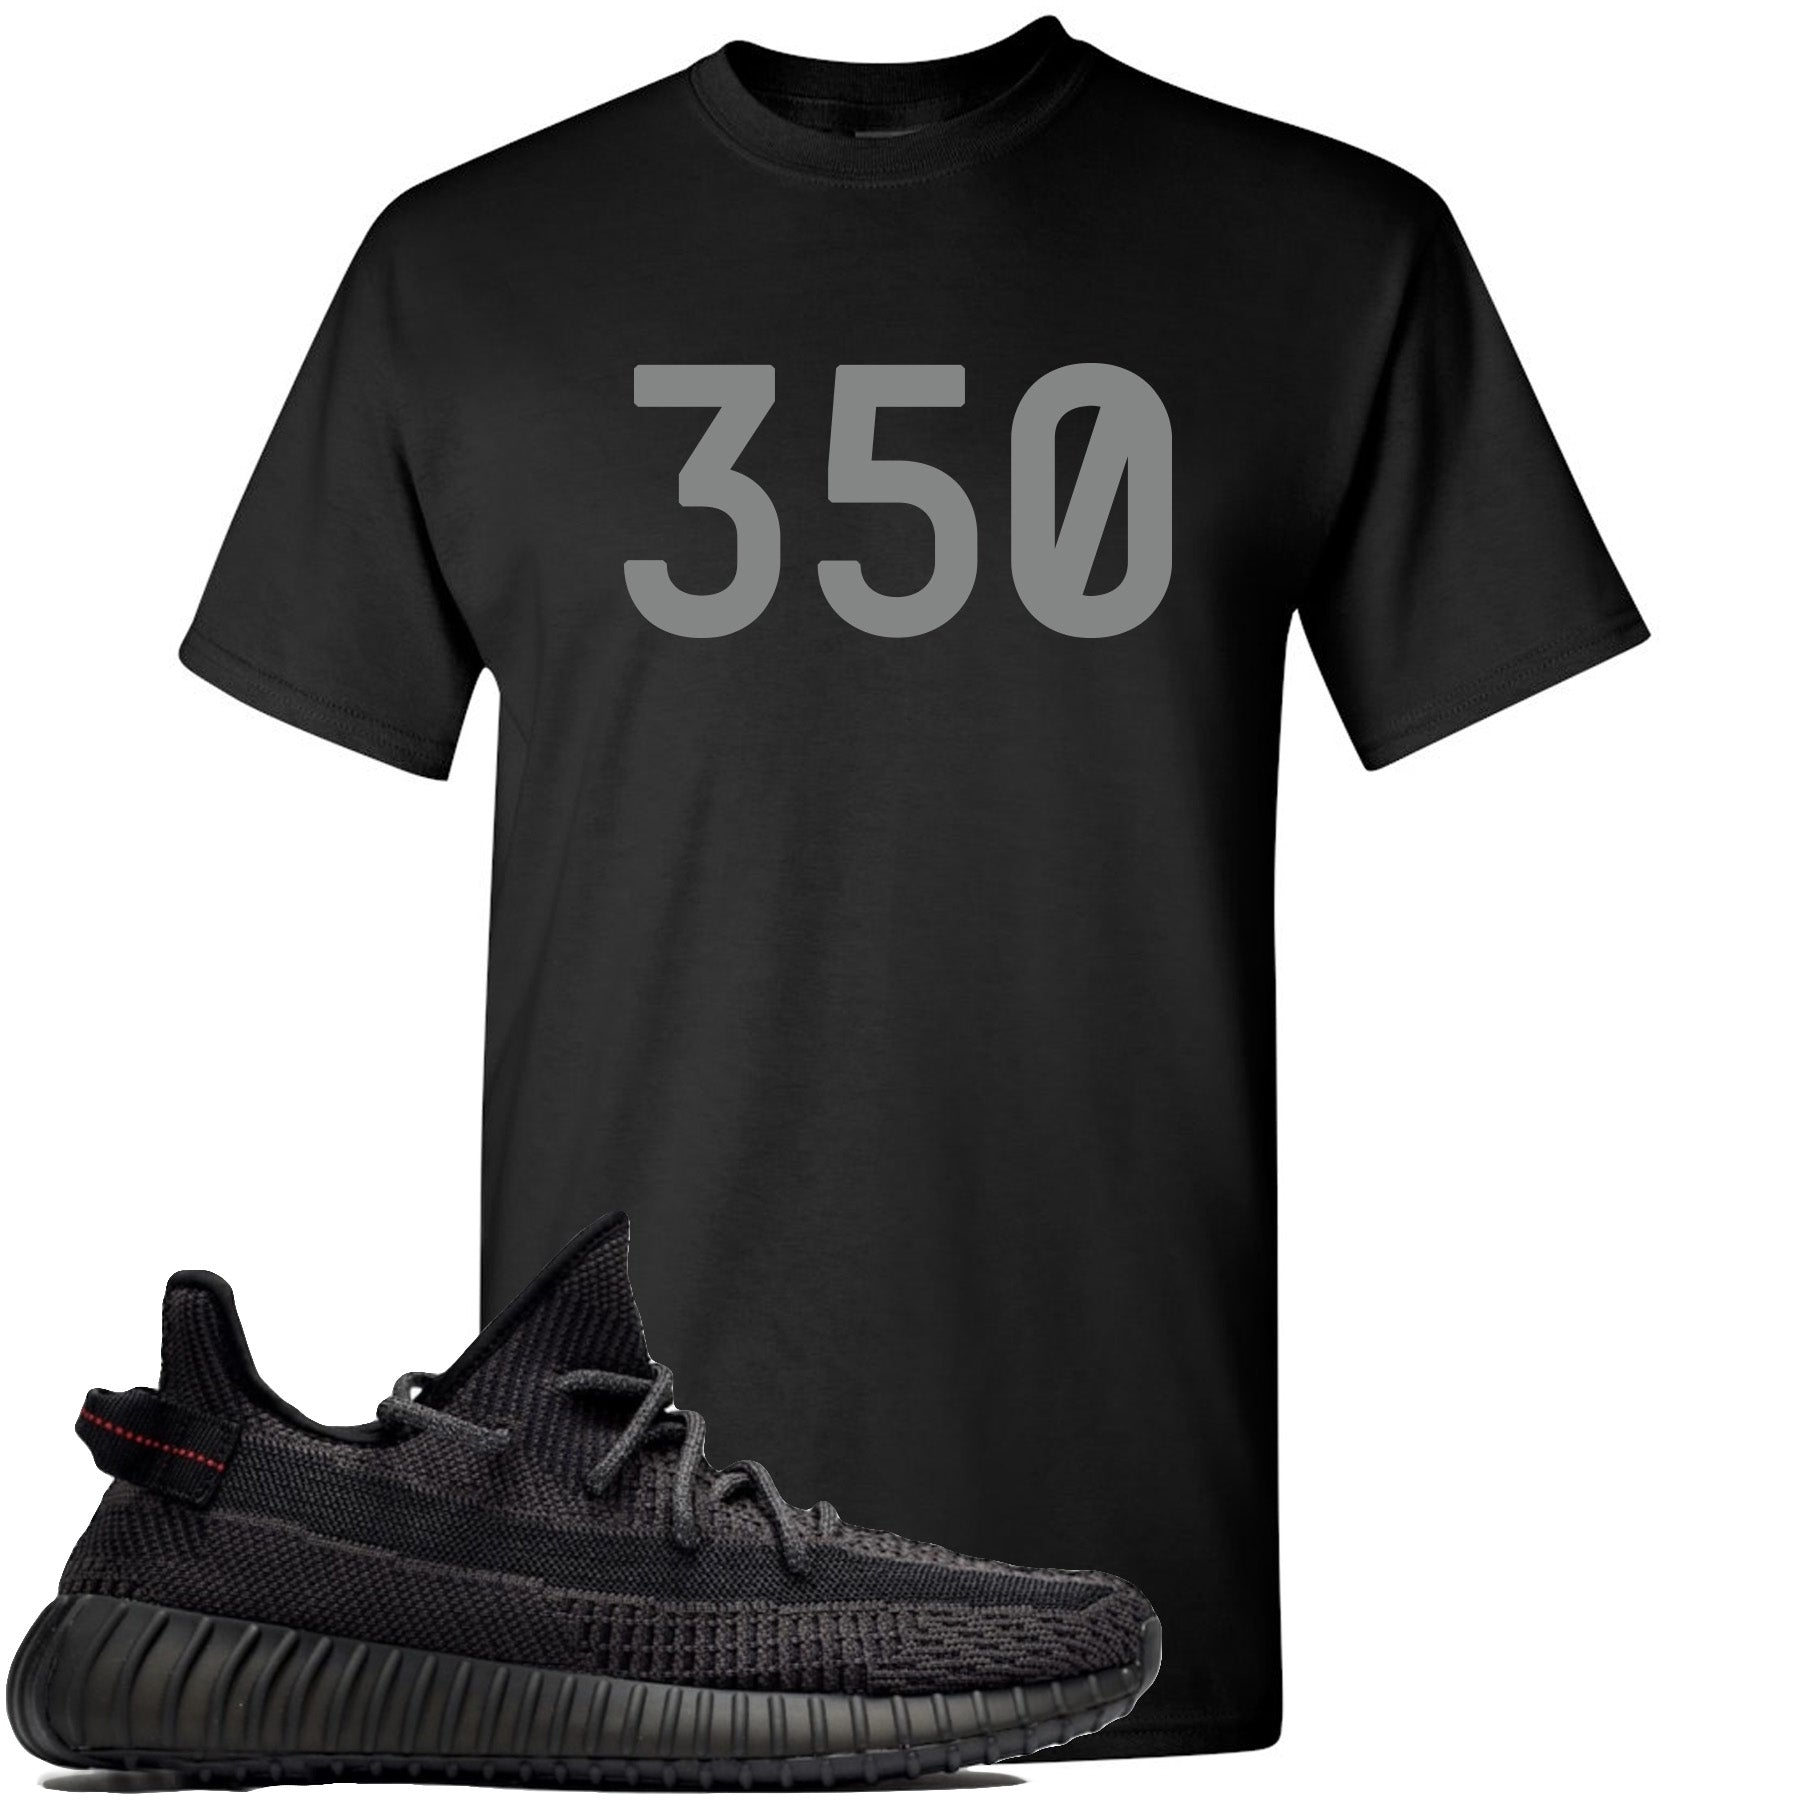 adidas boost t shirt Code promo sophie